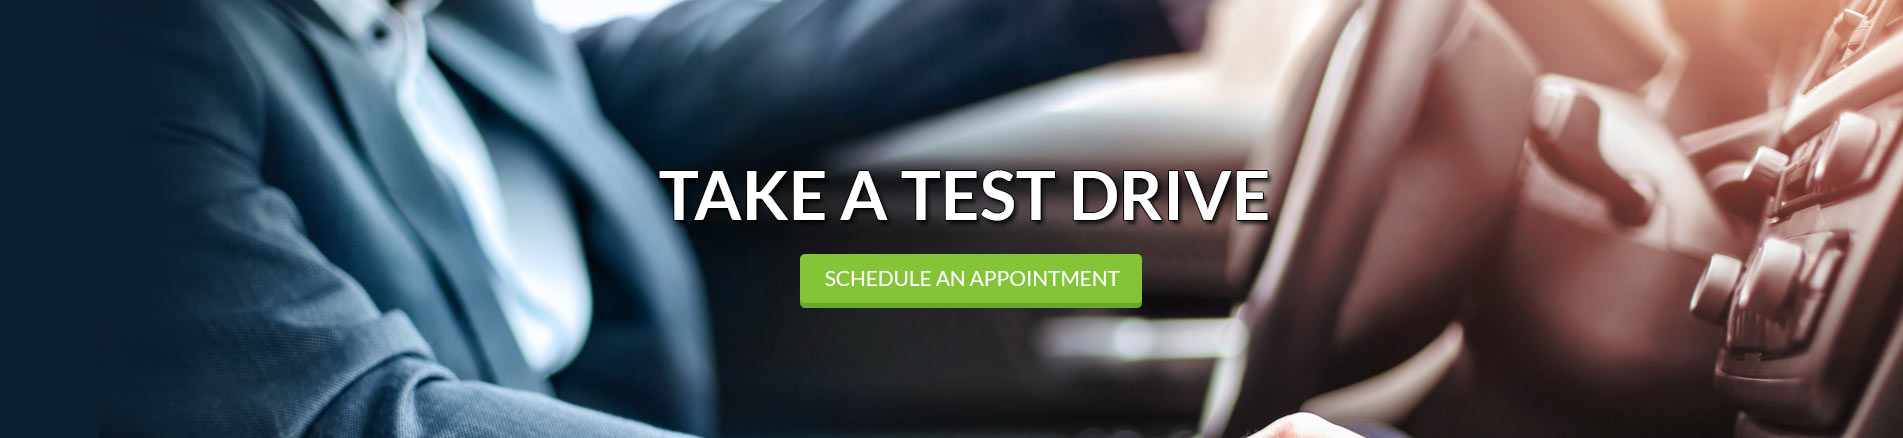 Schedule an appointment at King of Jamaica Auto Inc